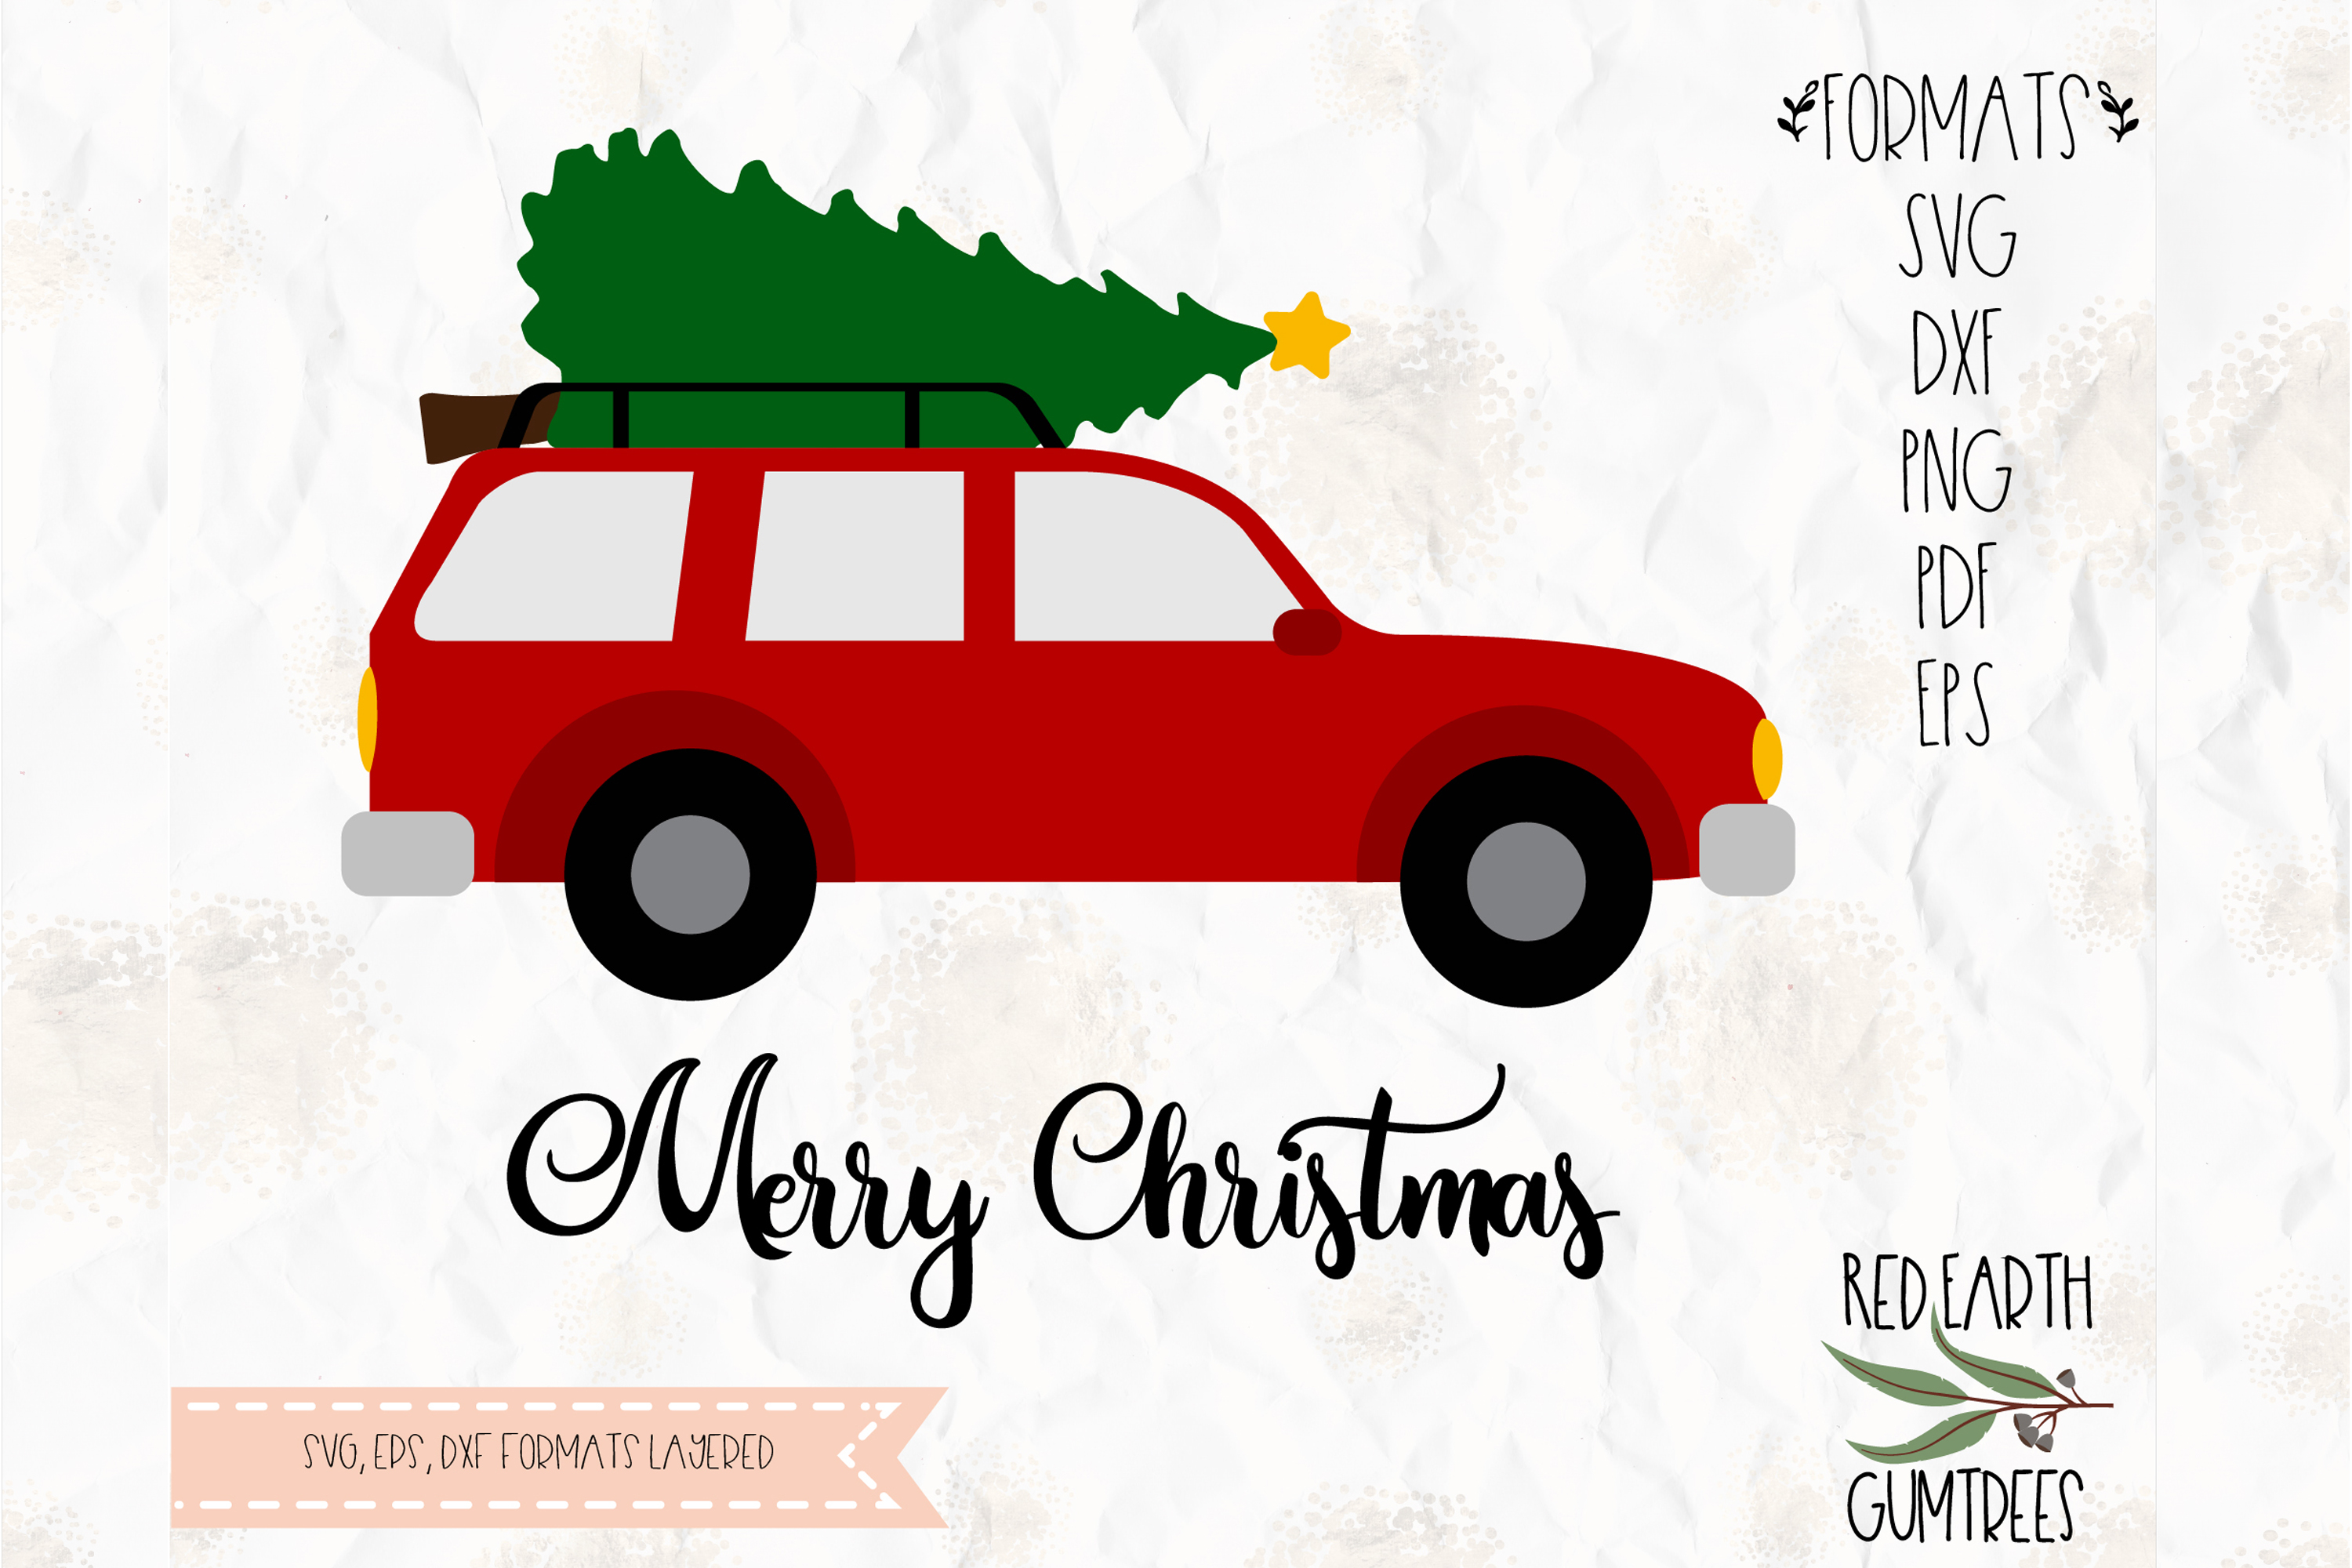 Car Christmas Tree.Car With Christmas Tree On Top Svg Dxf Png Eps Pdf Format